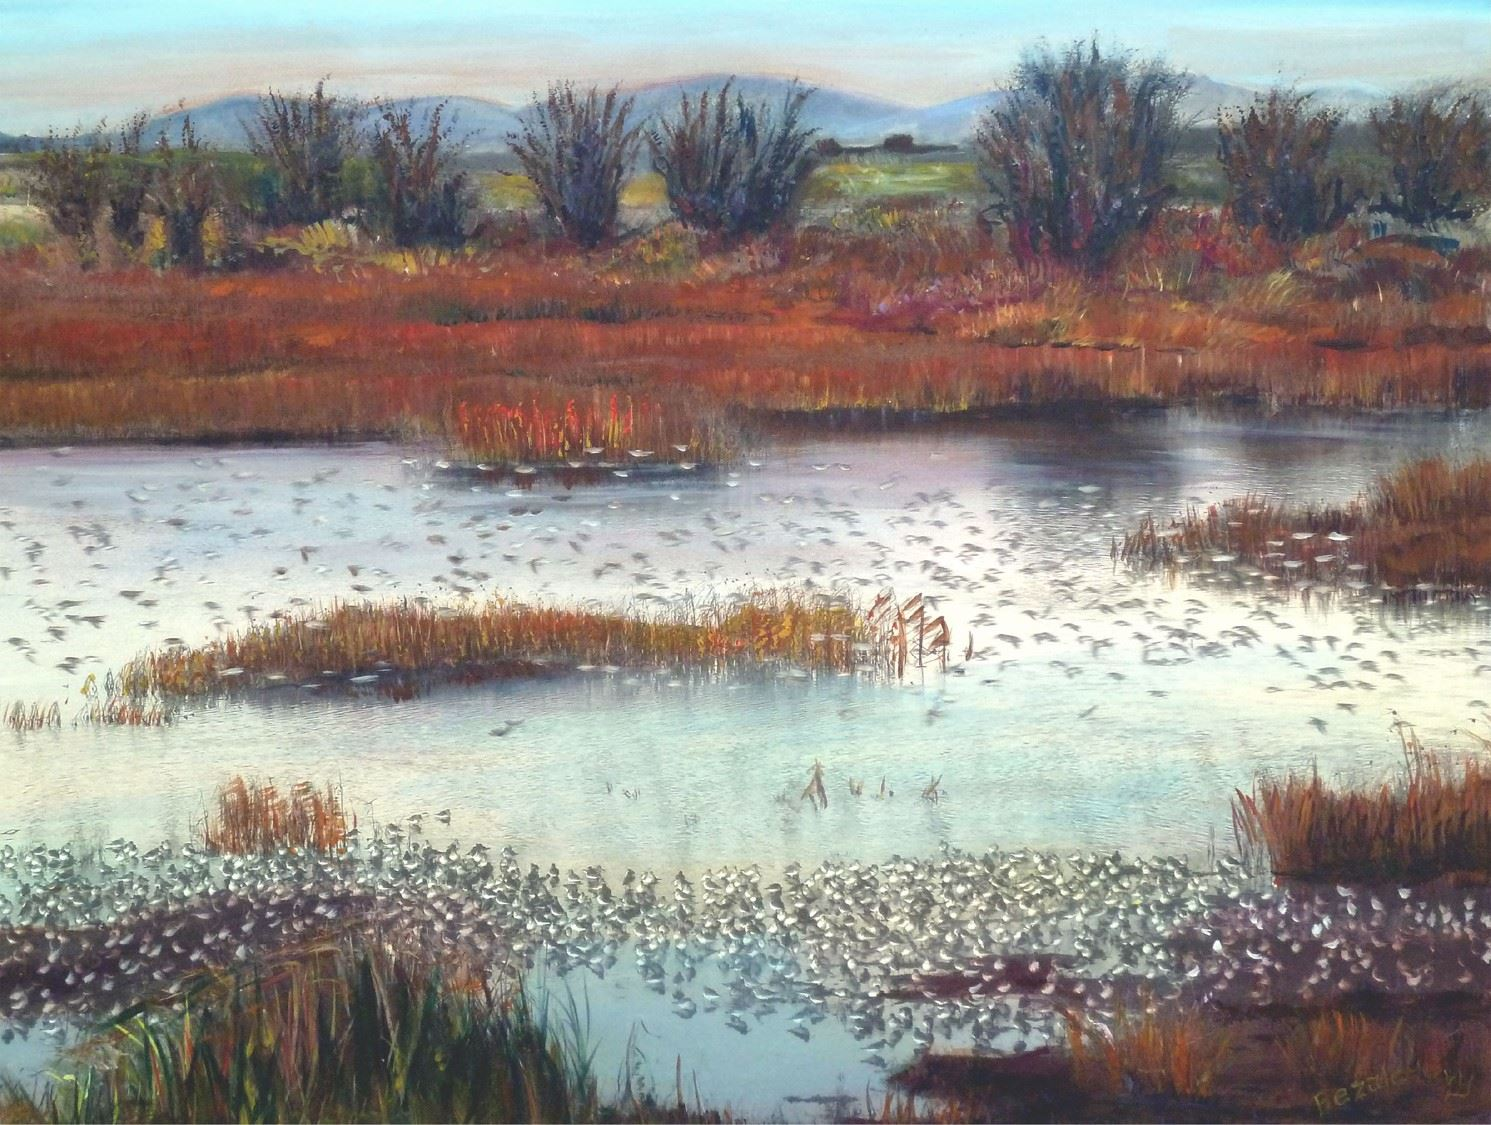 A waterscape painting with hundreds of white birds.  Red Reeds and green bushes are in the foreground and behind the water.